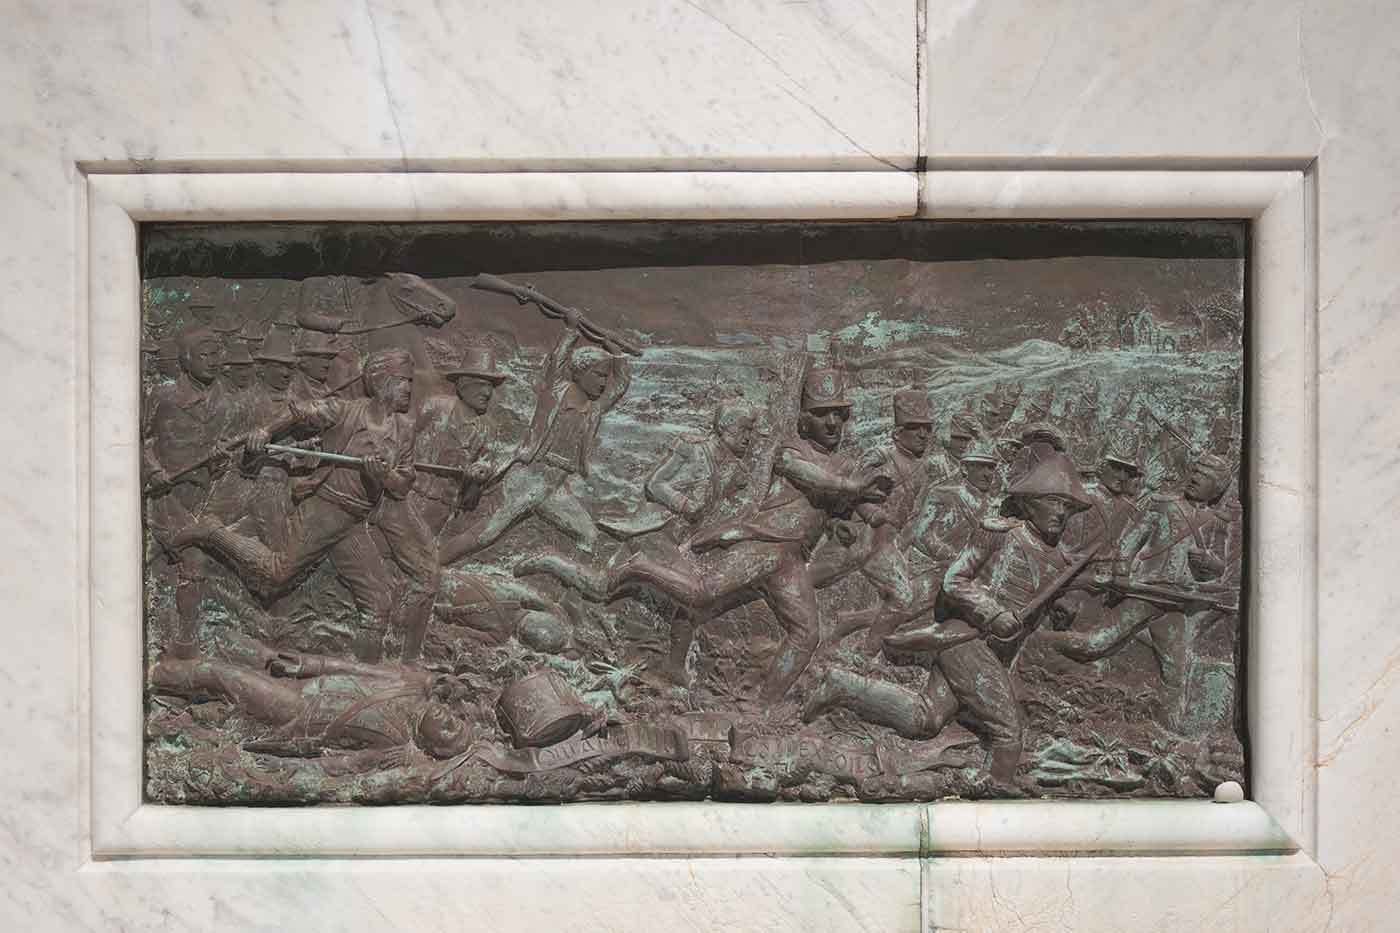 Bronze frieze featuring a battle scene. - click to view larger image